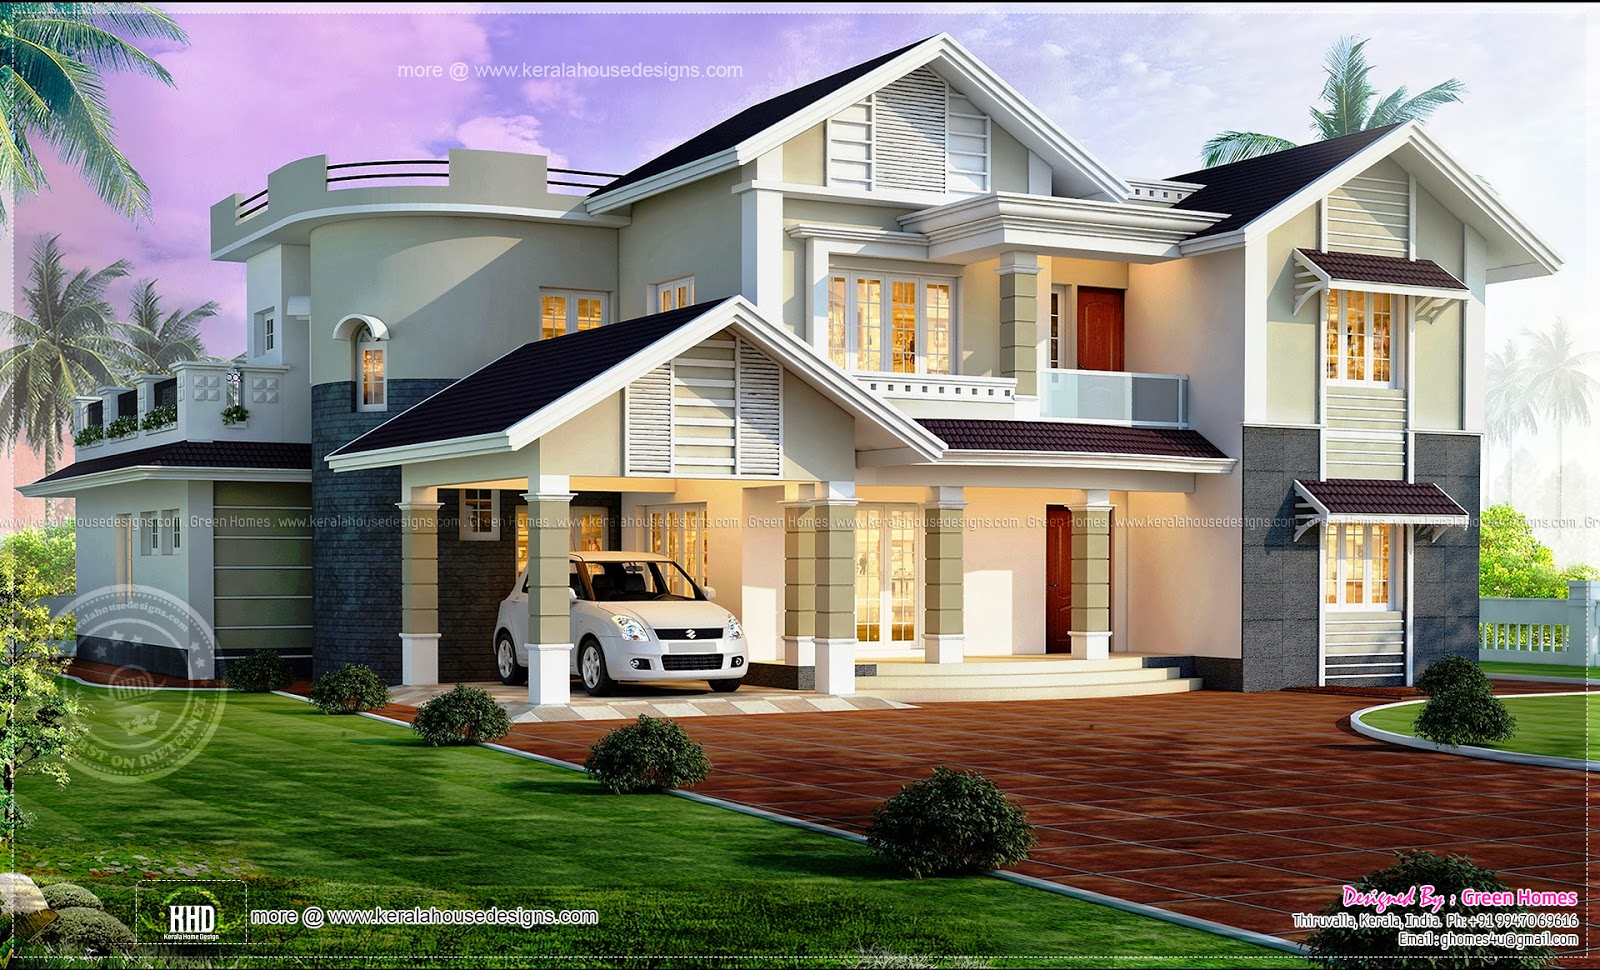 Beautiful kerala 1600 970 home design pinterest for Home design 4u kerala